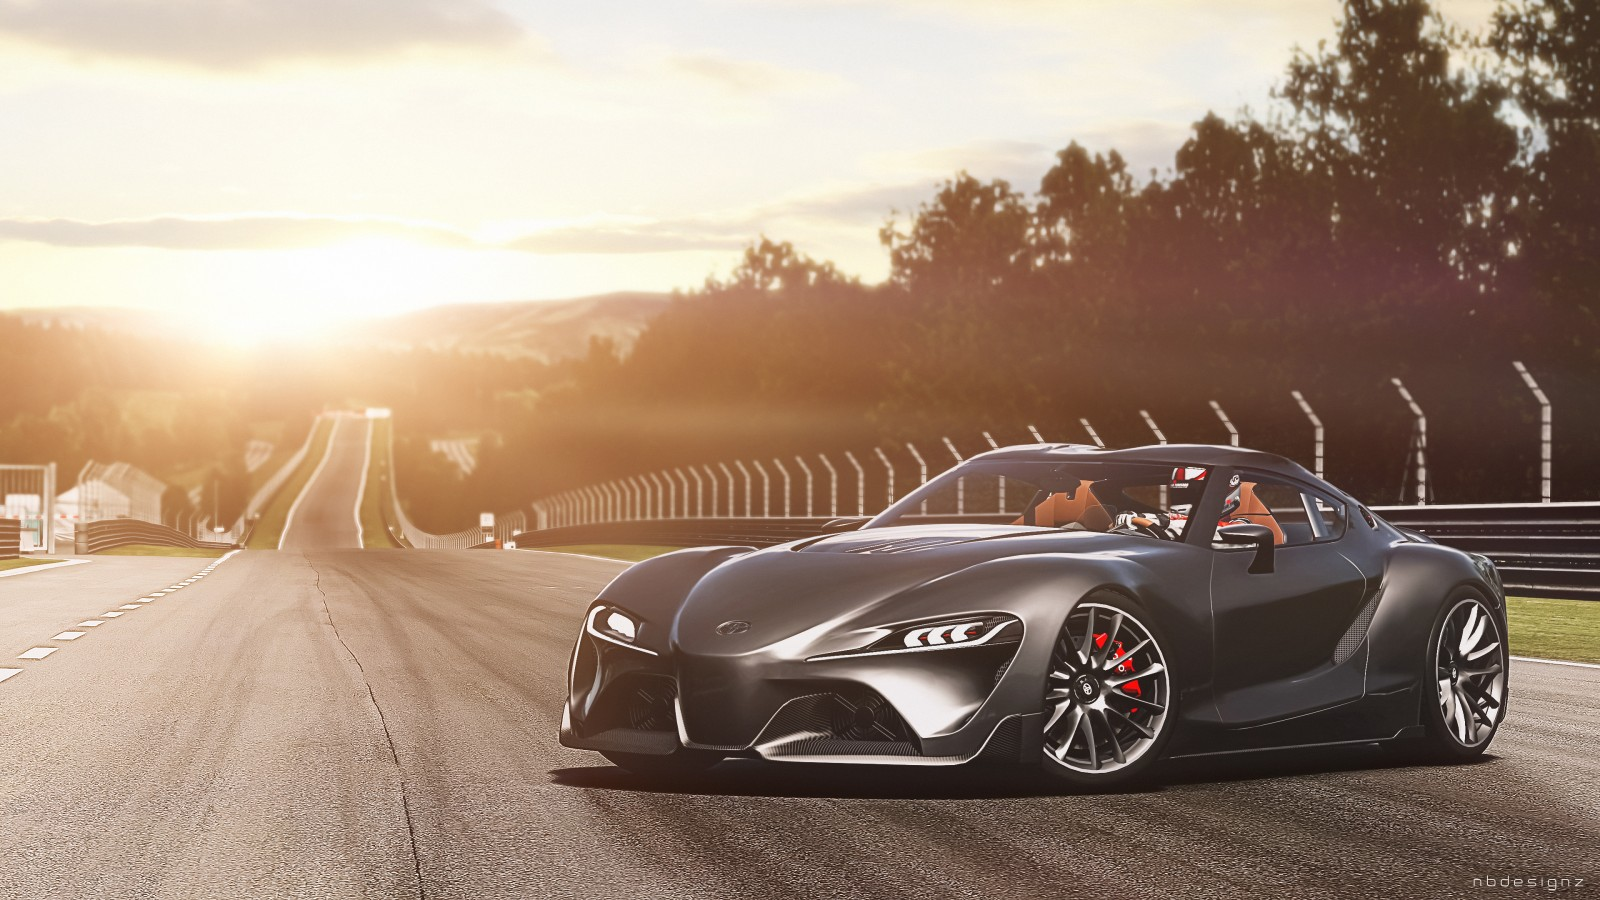 Toyota Ft 1 >> Toyota FT 1 Gran Turismo 6 Wallpaper | HD Car Wallpapers ...